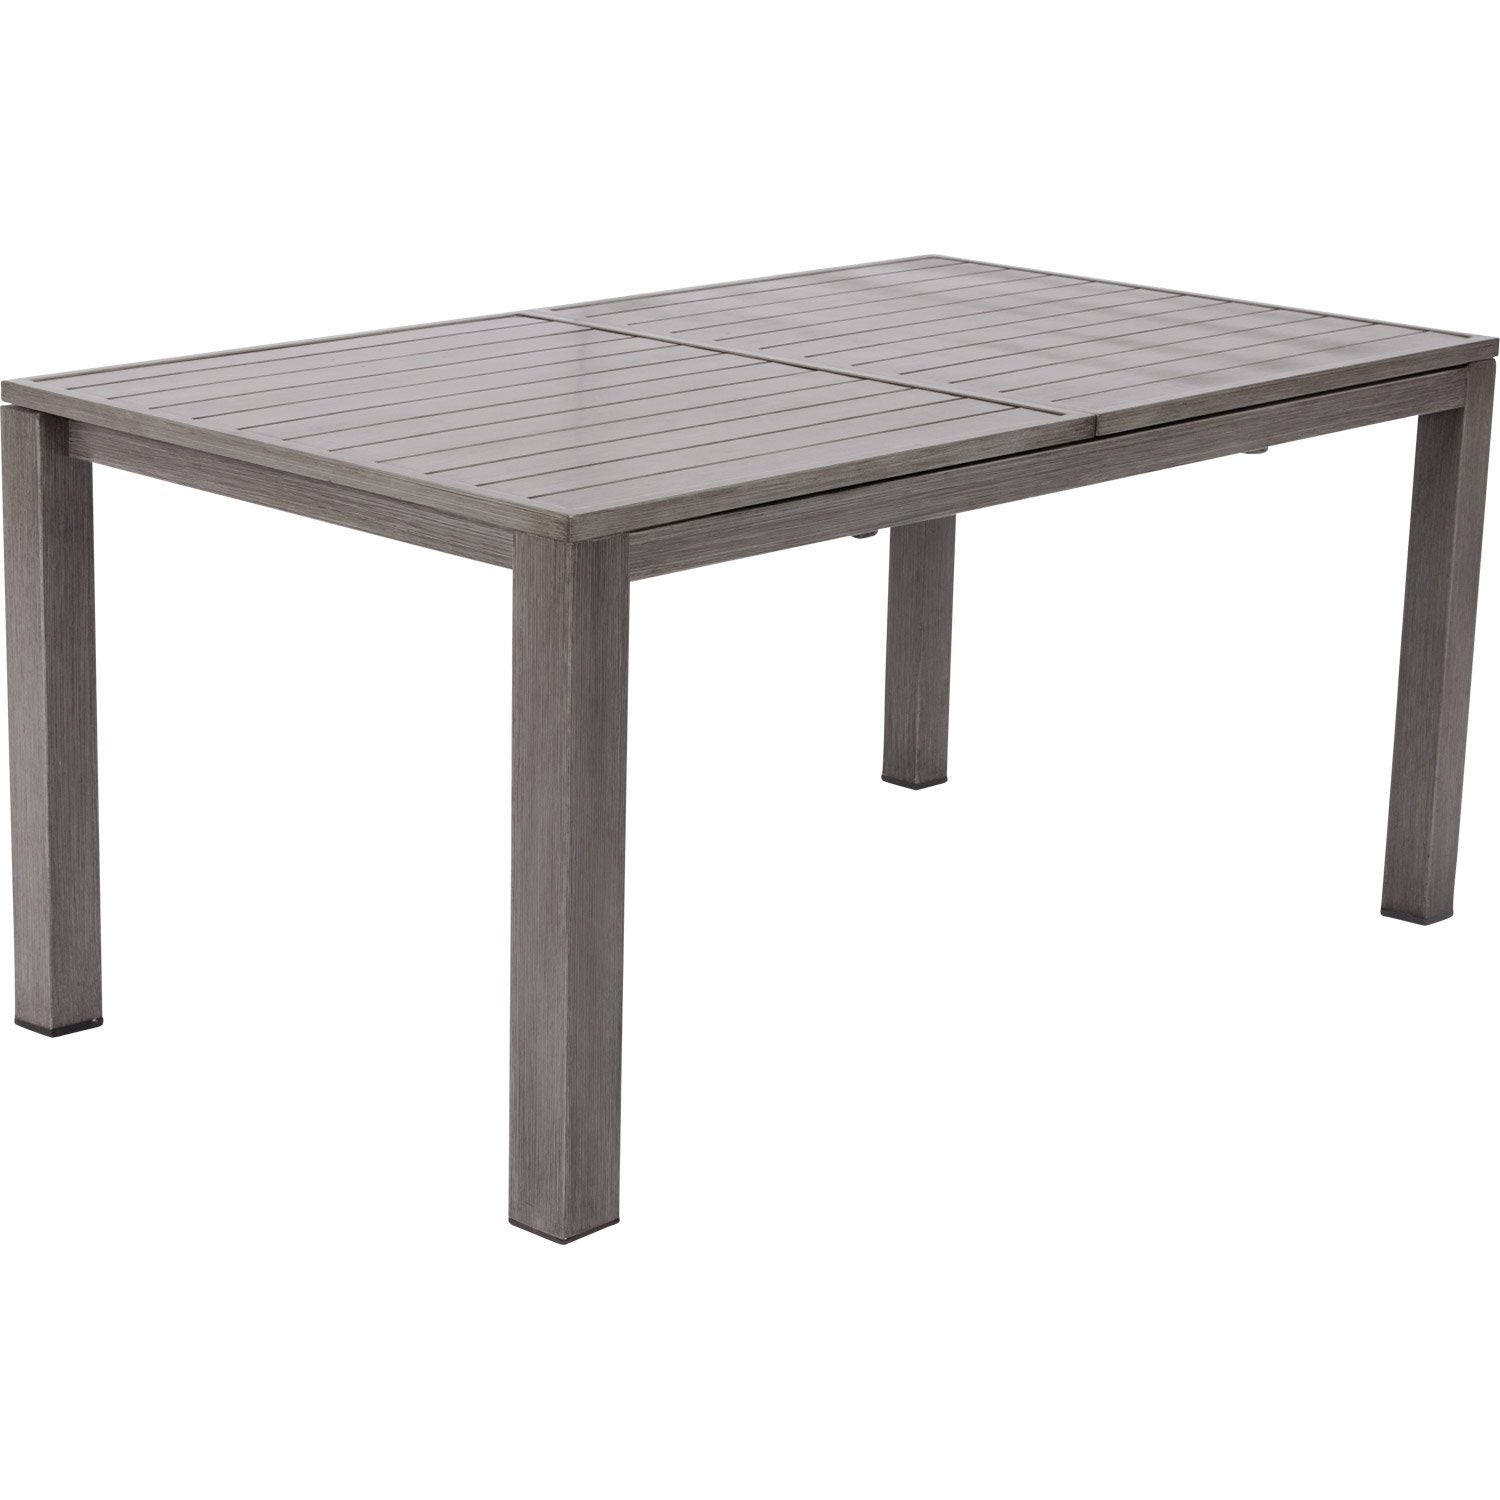 Table De Jardin Naterial Antibes Rectangulaire Gris Look Bois 10 Personnes Leroy Merlin